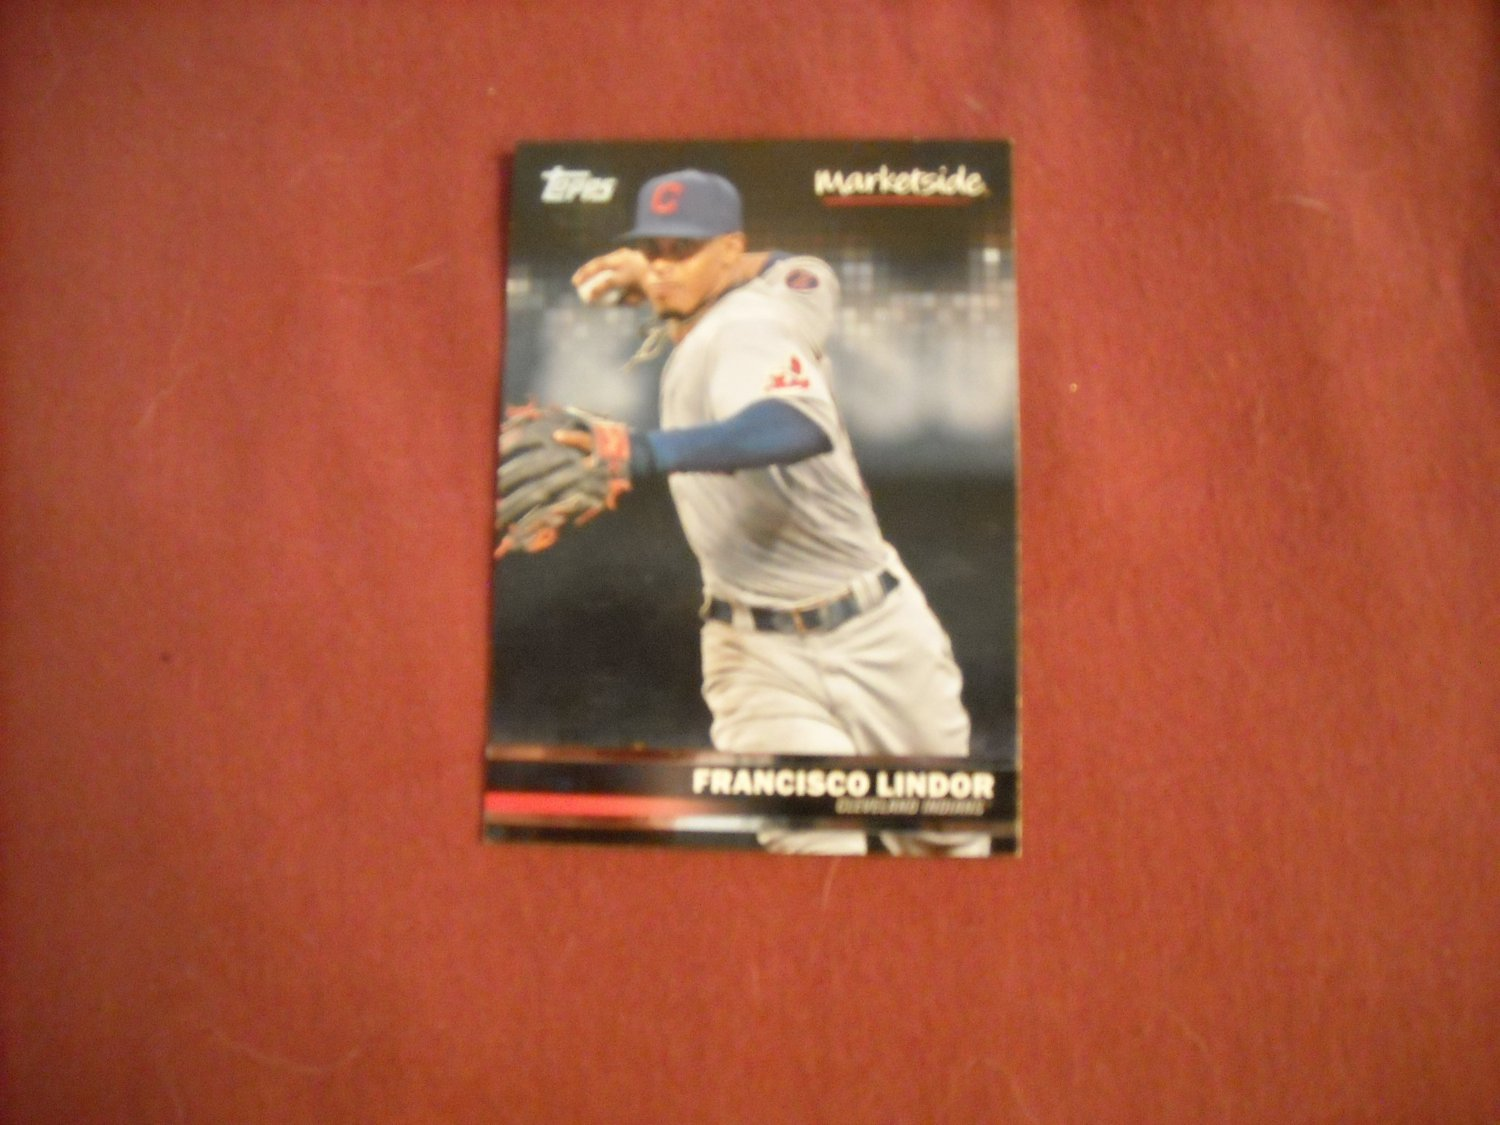 Francisco Lindor Cleveland Indians Marketside Card No. 18 - Topps 2016 Baseball Card